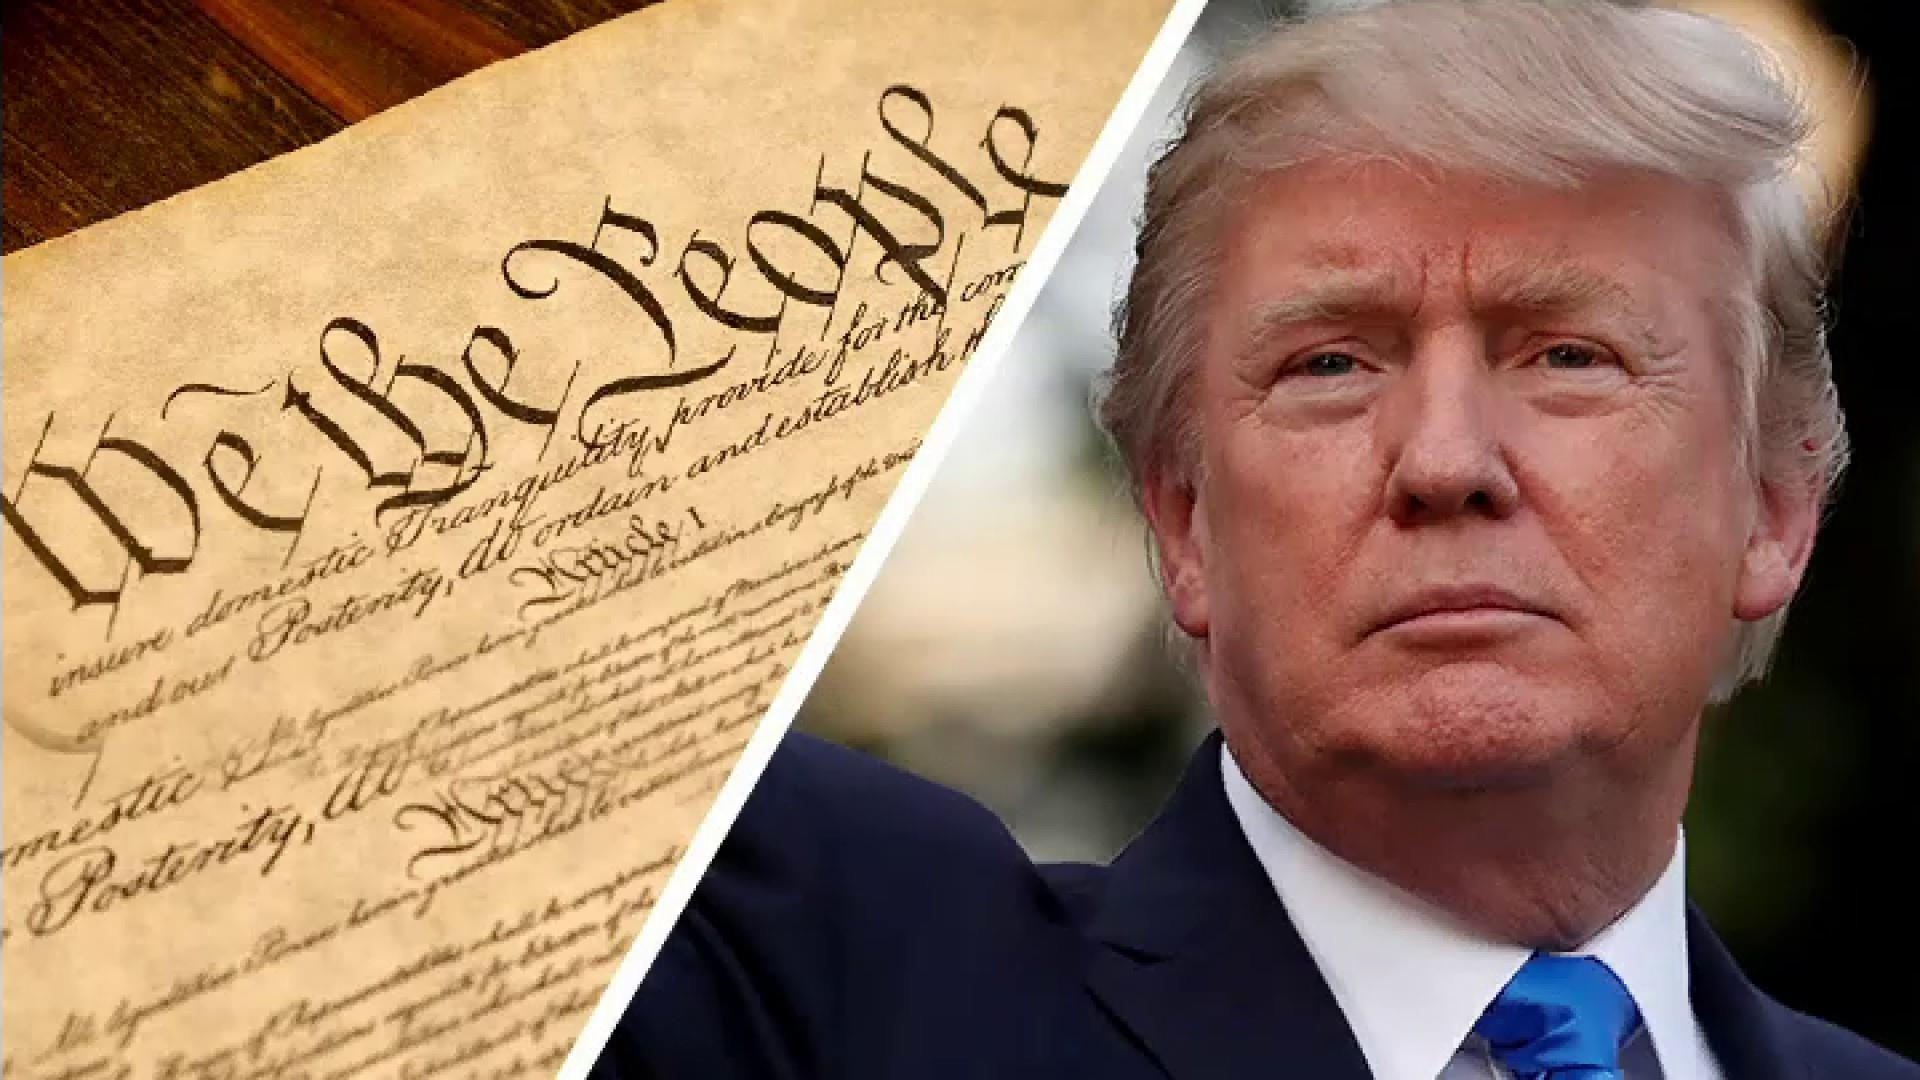 Trump says the 'phony' Constitution 'doesn't matter' because he's 'rich'